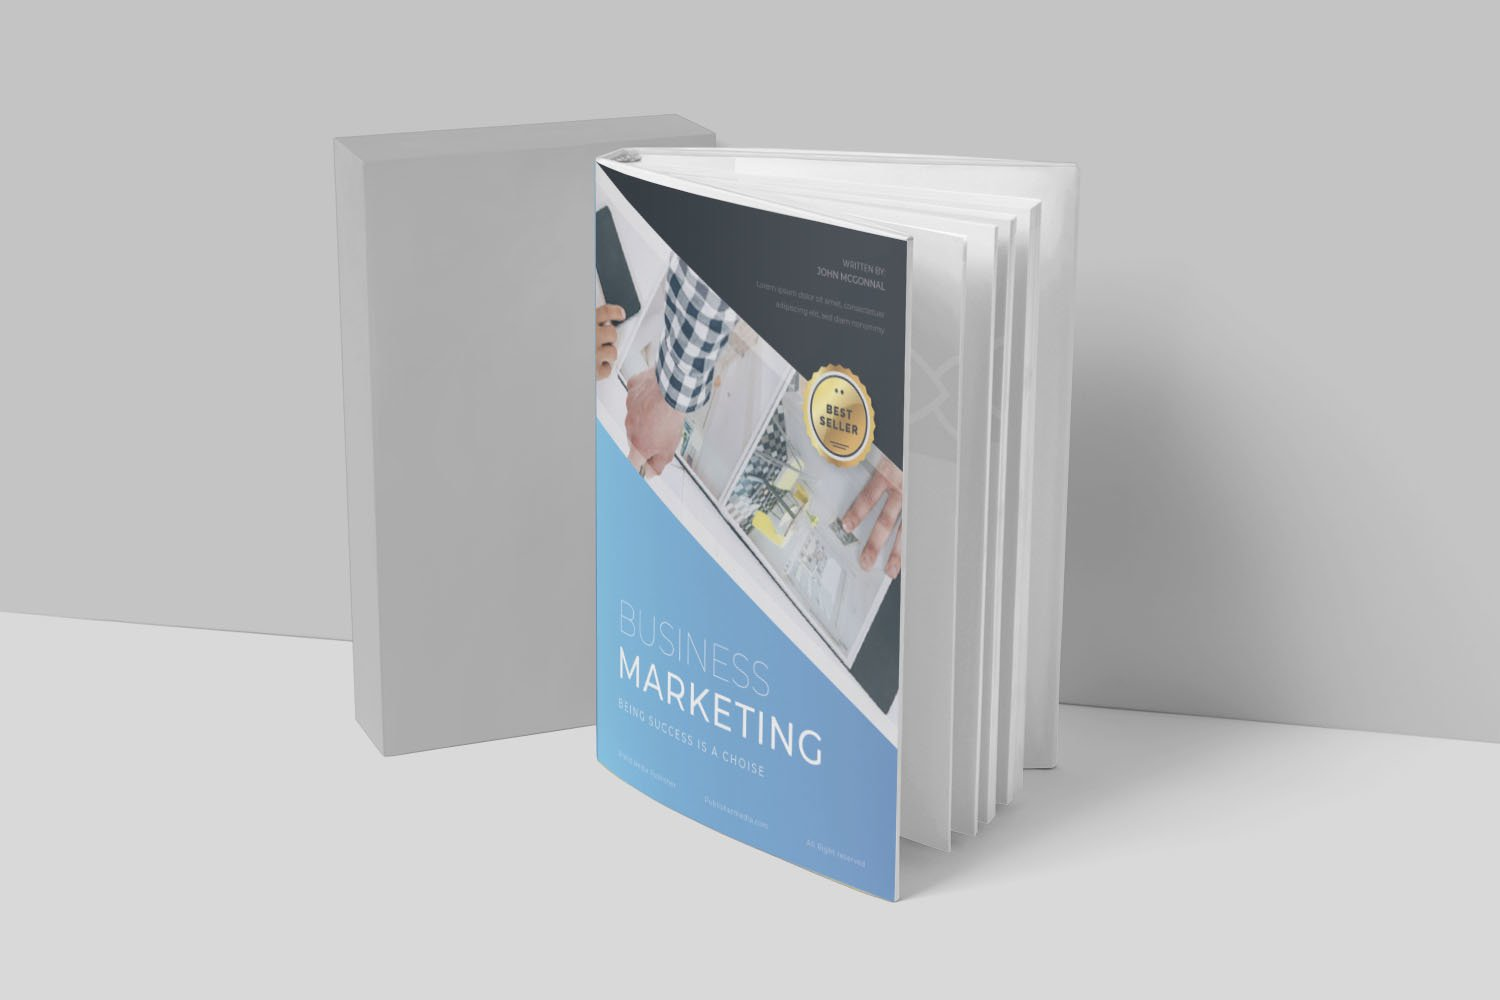 Business Marketing Book Cover example image 3